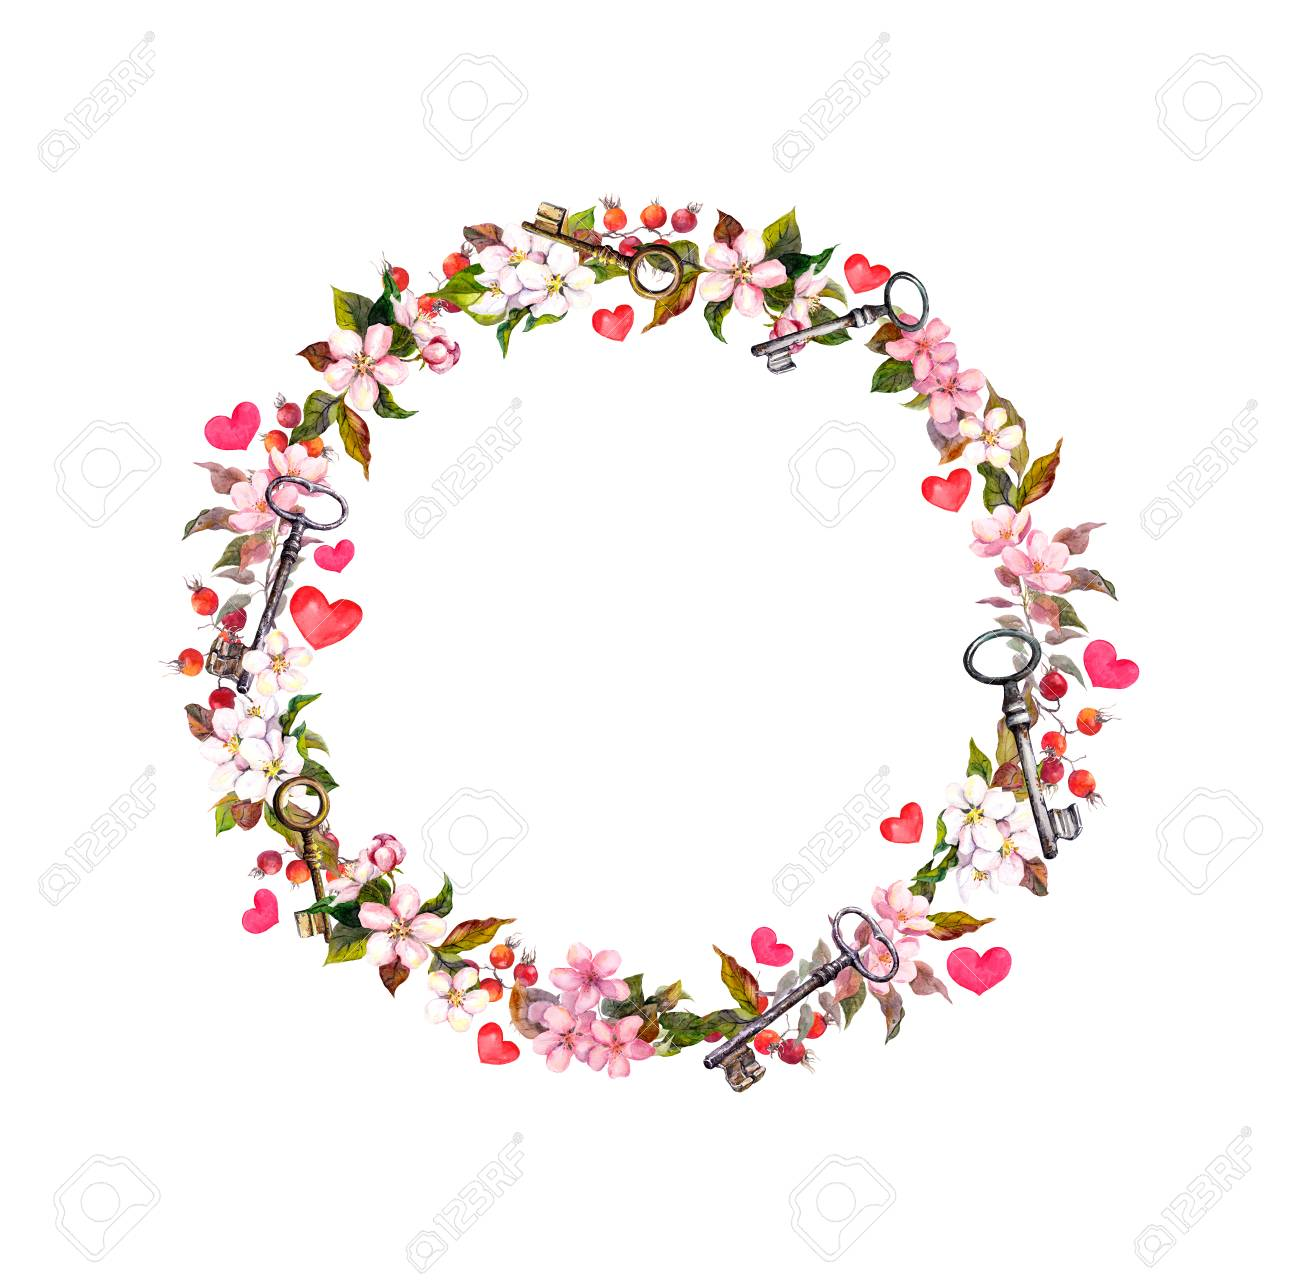 Floral wreath with pink flowers hearts keys watercolor circle floral wreath with pink flowers hearts keys watercolor circle border for valentine day mightylinksfo